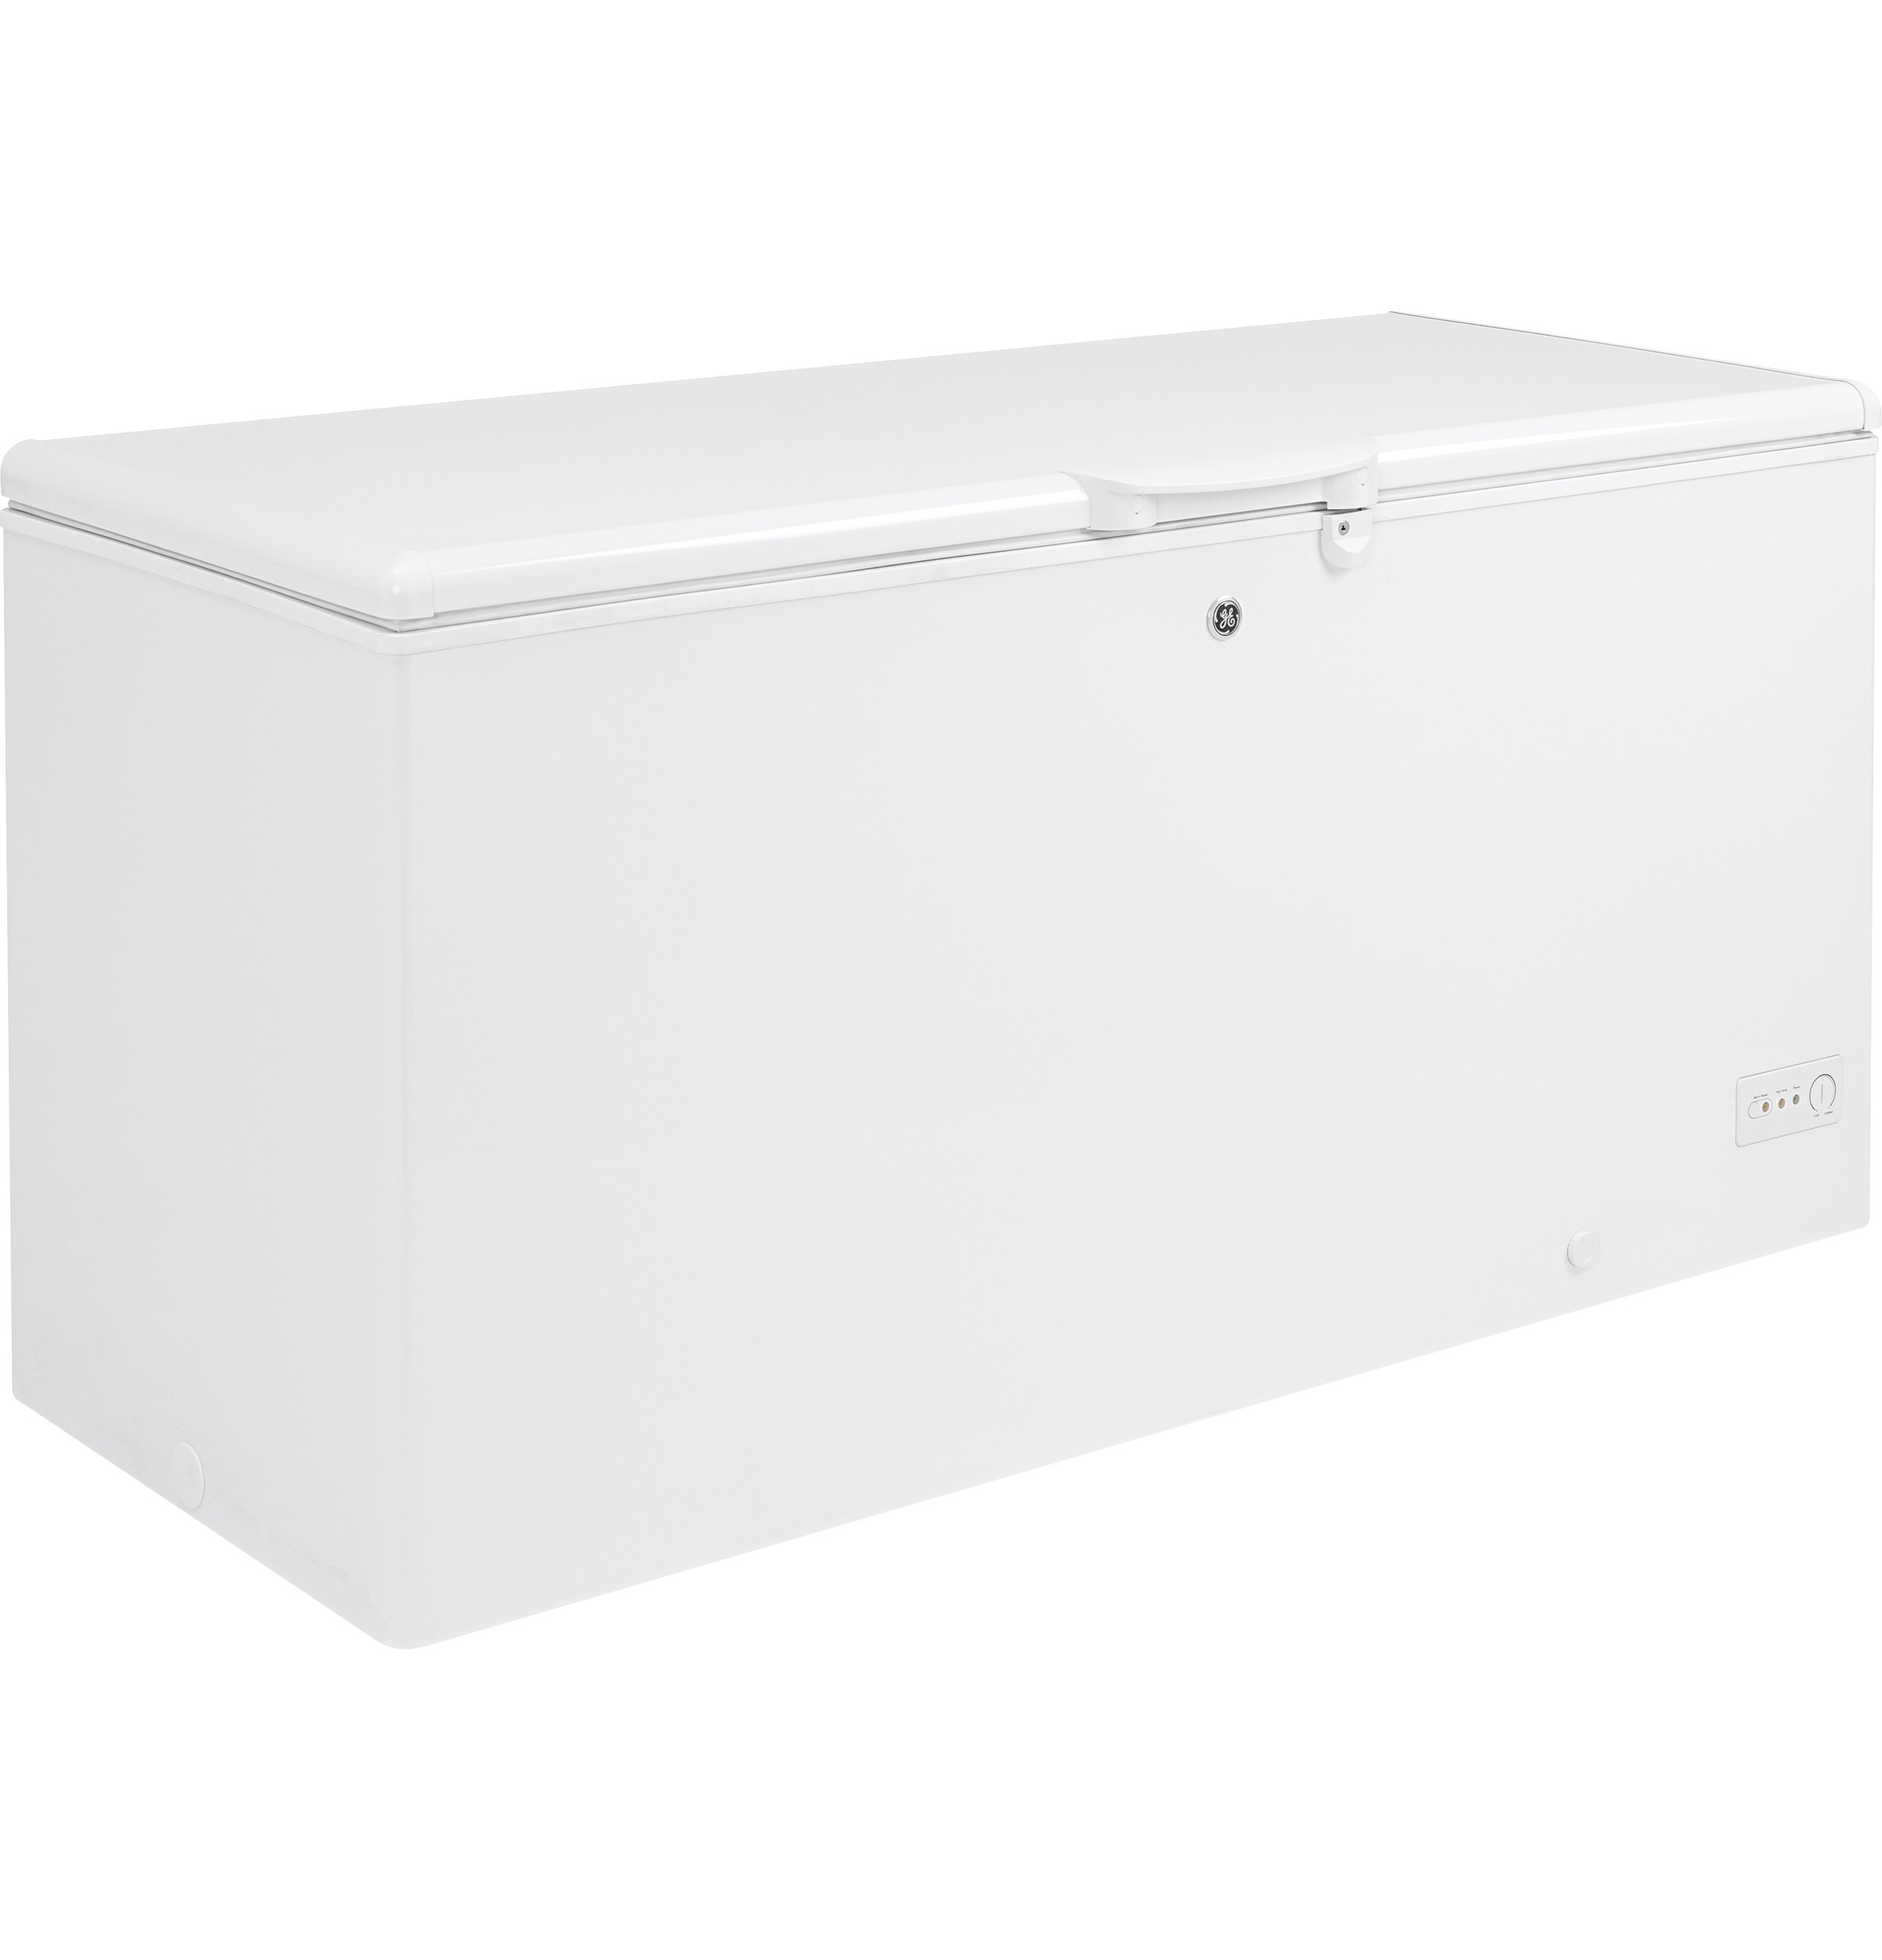 Model: FCM16DLWW | GE GE® 15.7 Cu. Ft. Manual Defrost Chest Freezer